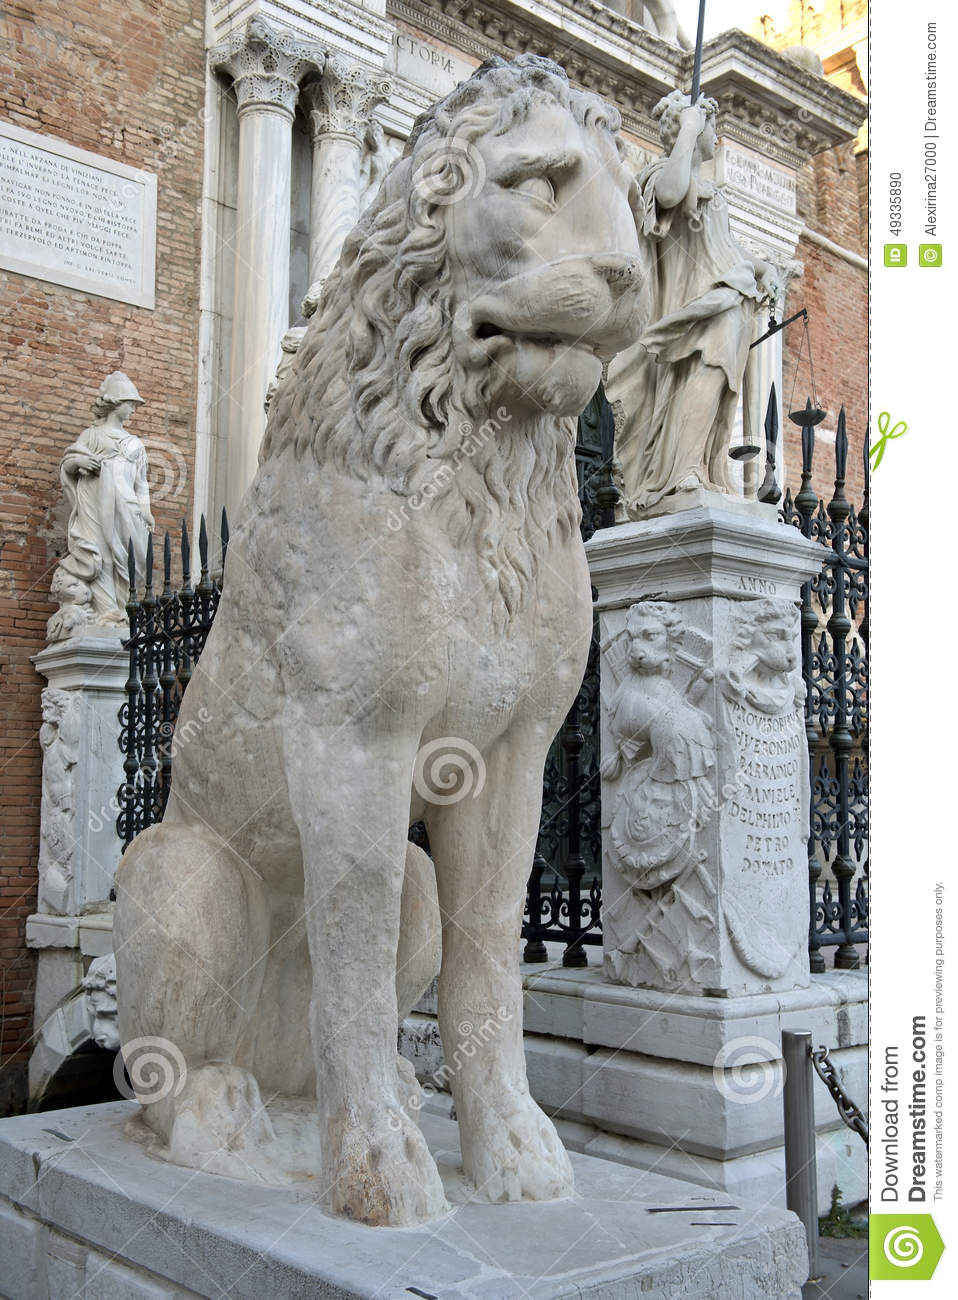 Lion Sculpture at the Venetian Arsenal, Venice